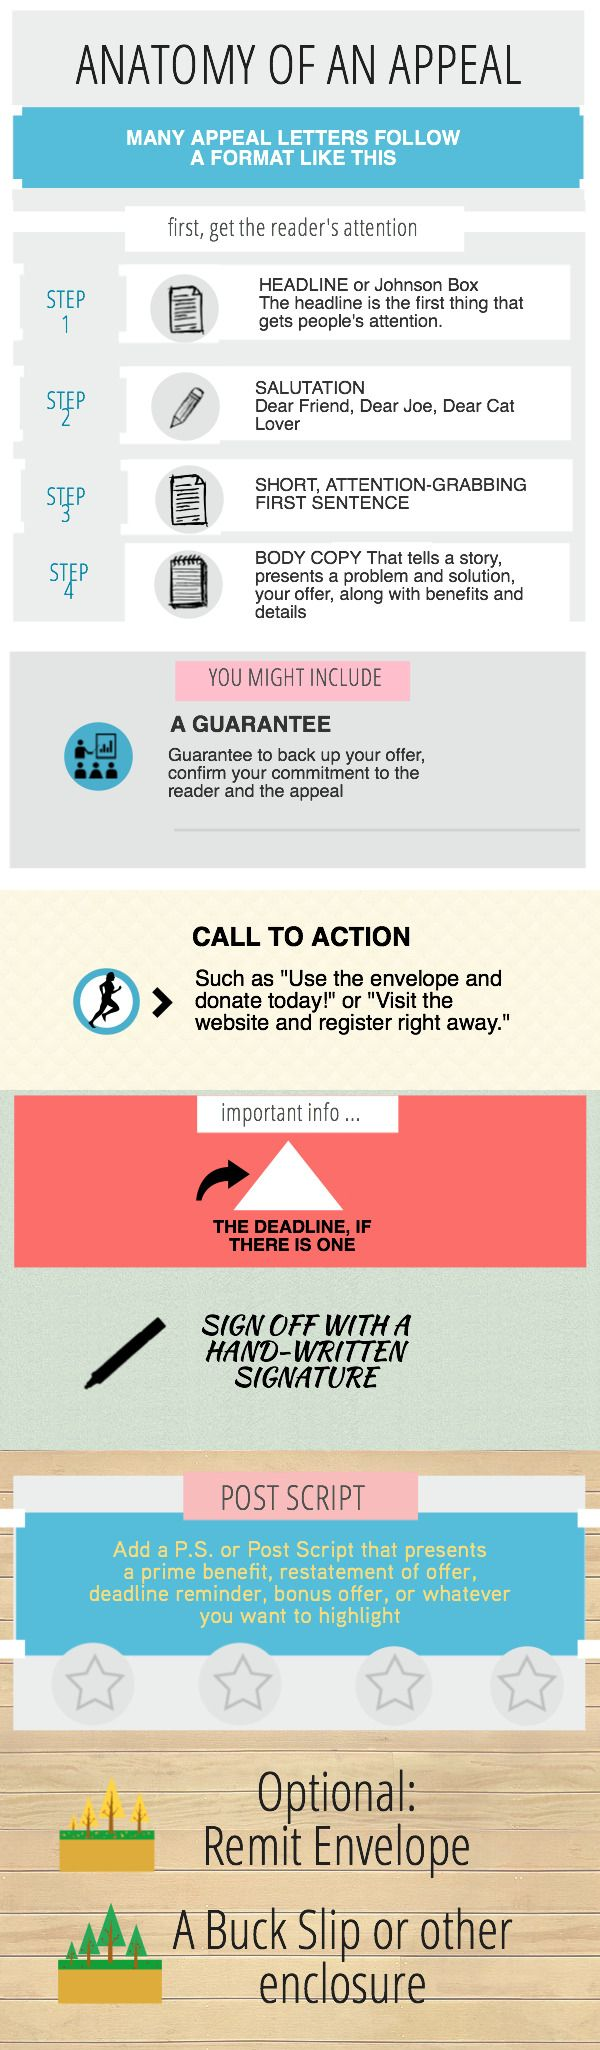 76 Best Annual Appeal Images On Pinterest Nonprofit Fundraising